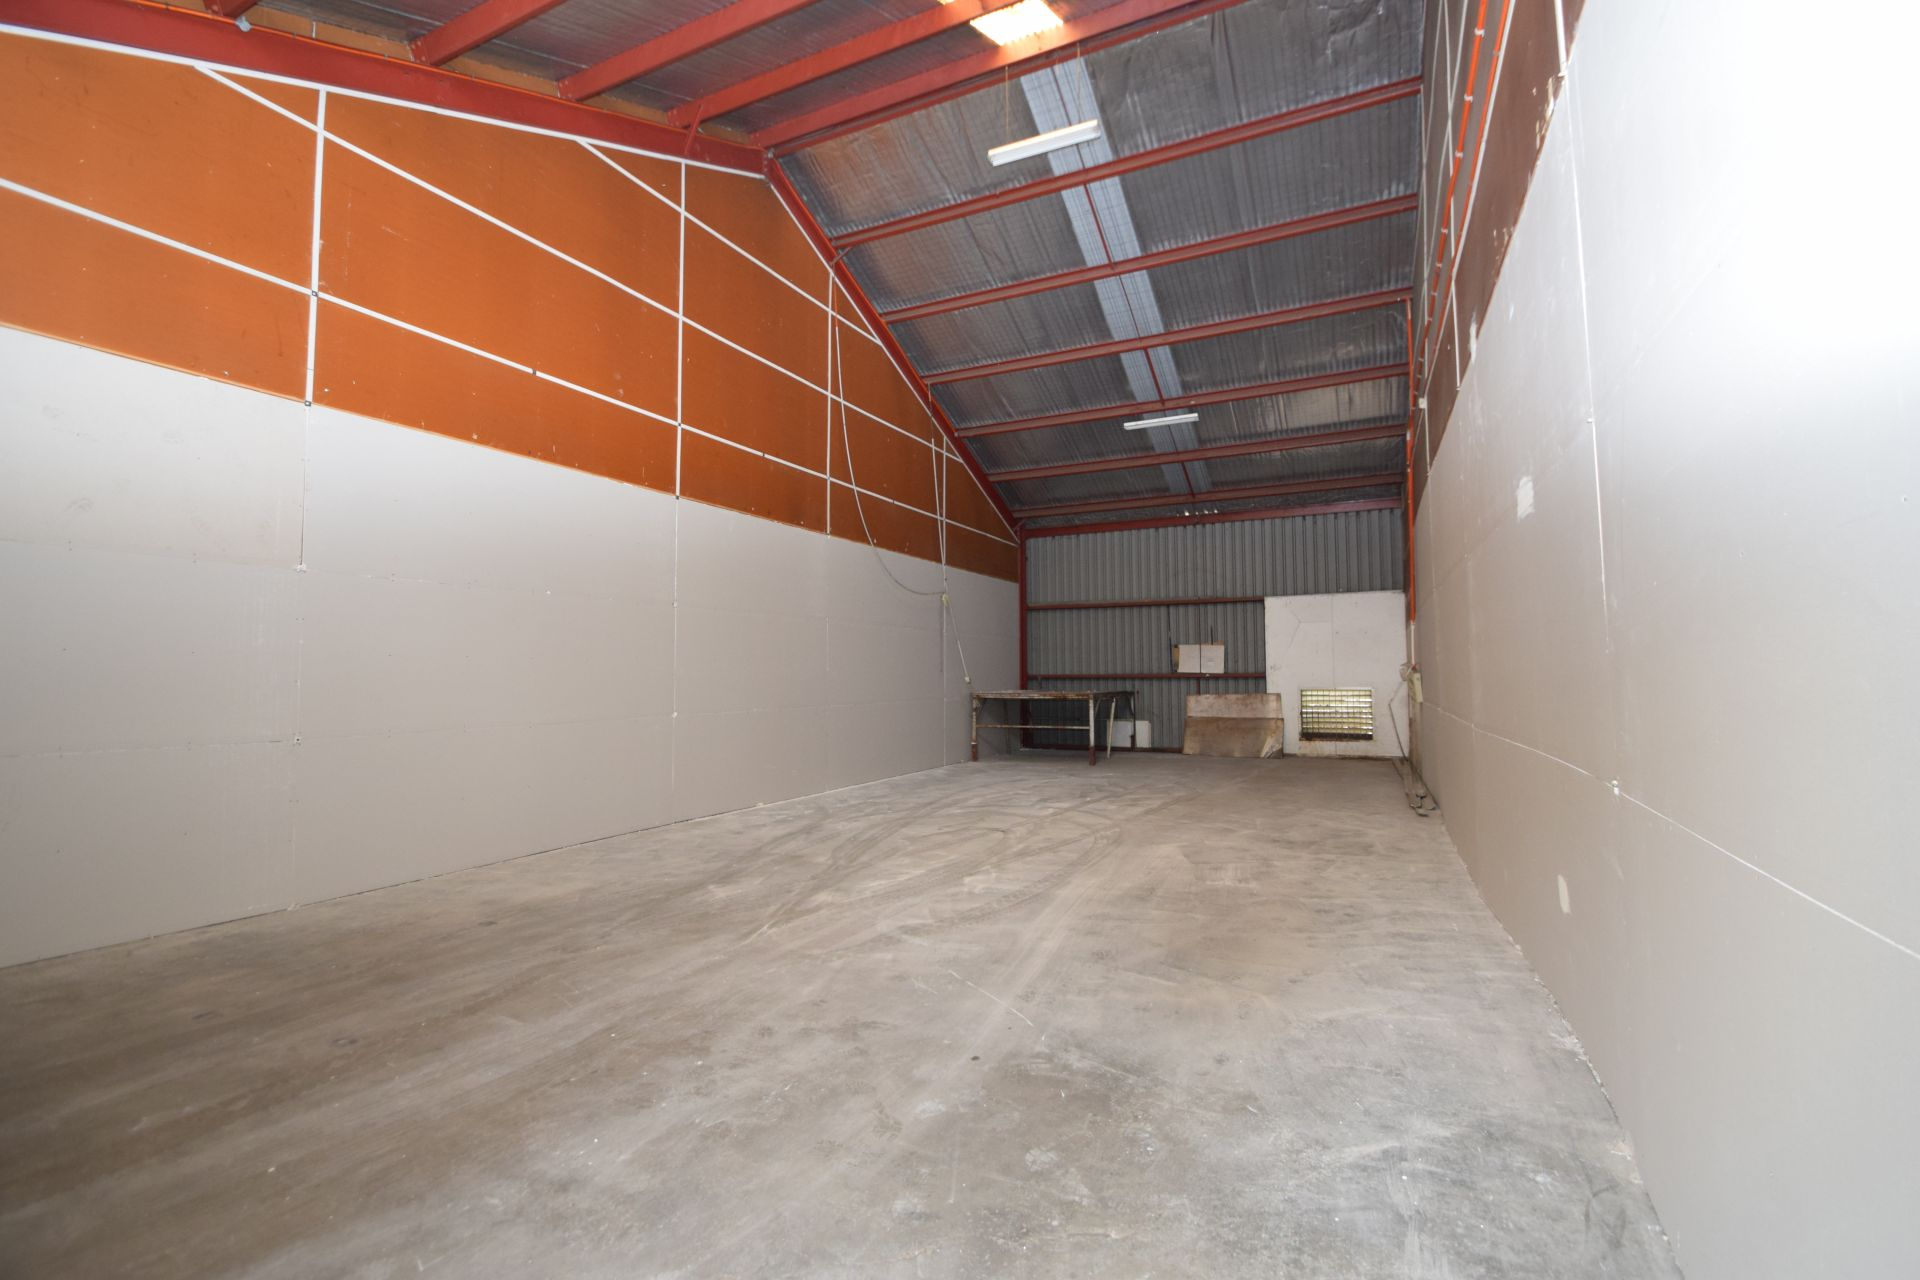 SHED SPACE AVAILABLE FOR STORAGE OR SMALL BUSINESS